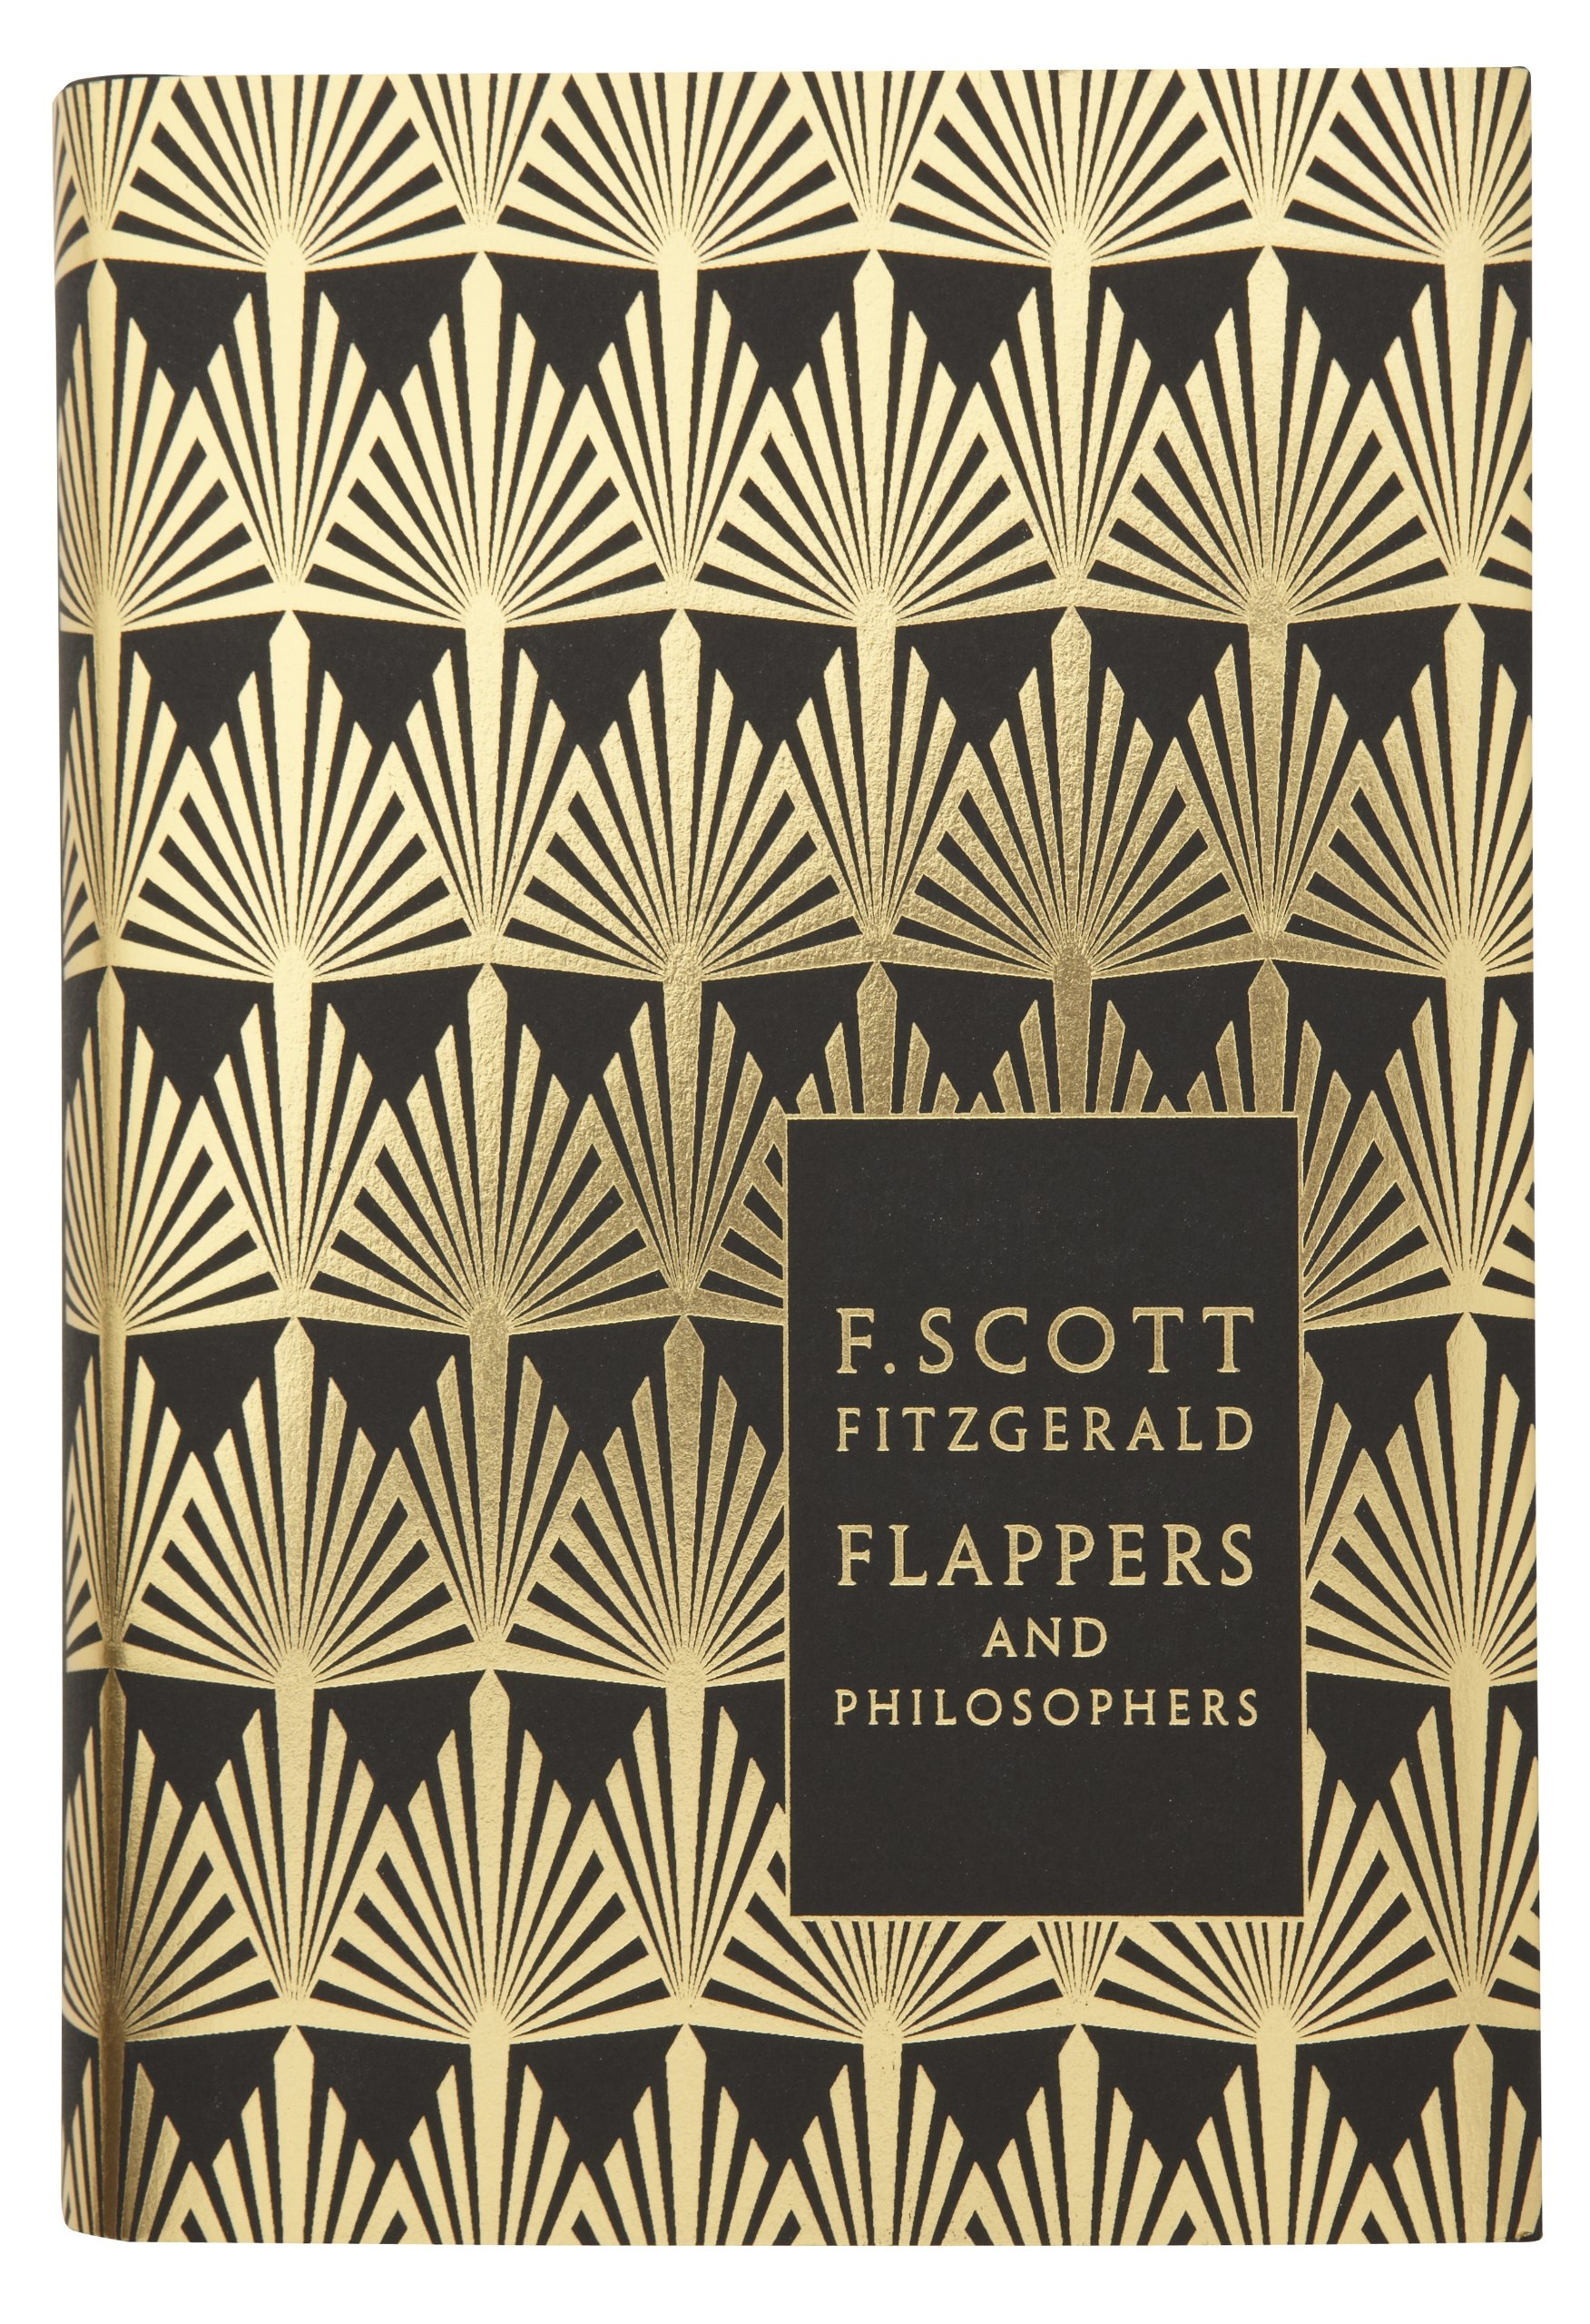 Flappers And Philosophers  The Collected Short Stories Of F. Scott Fitzgerald  Penguin F Scott Fitzgerald Hardback Collection